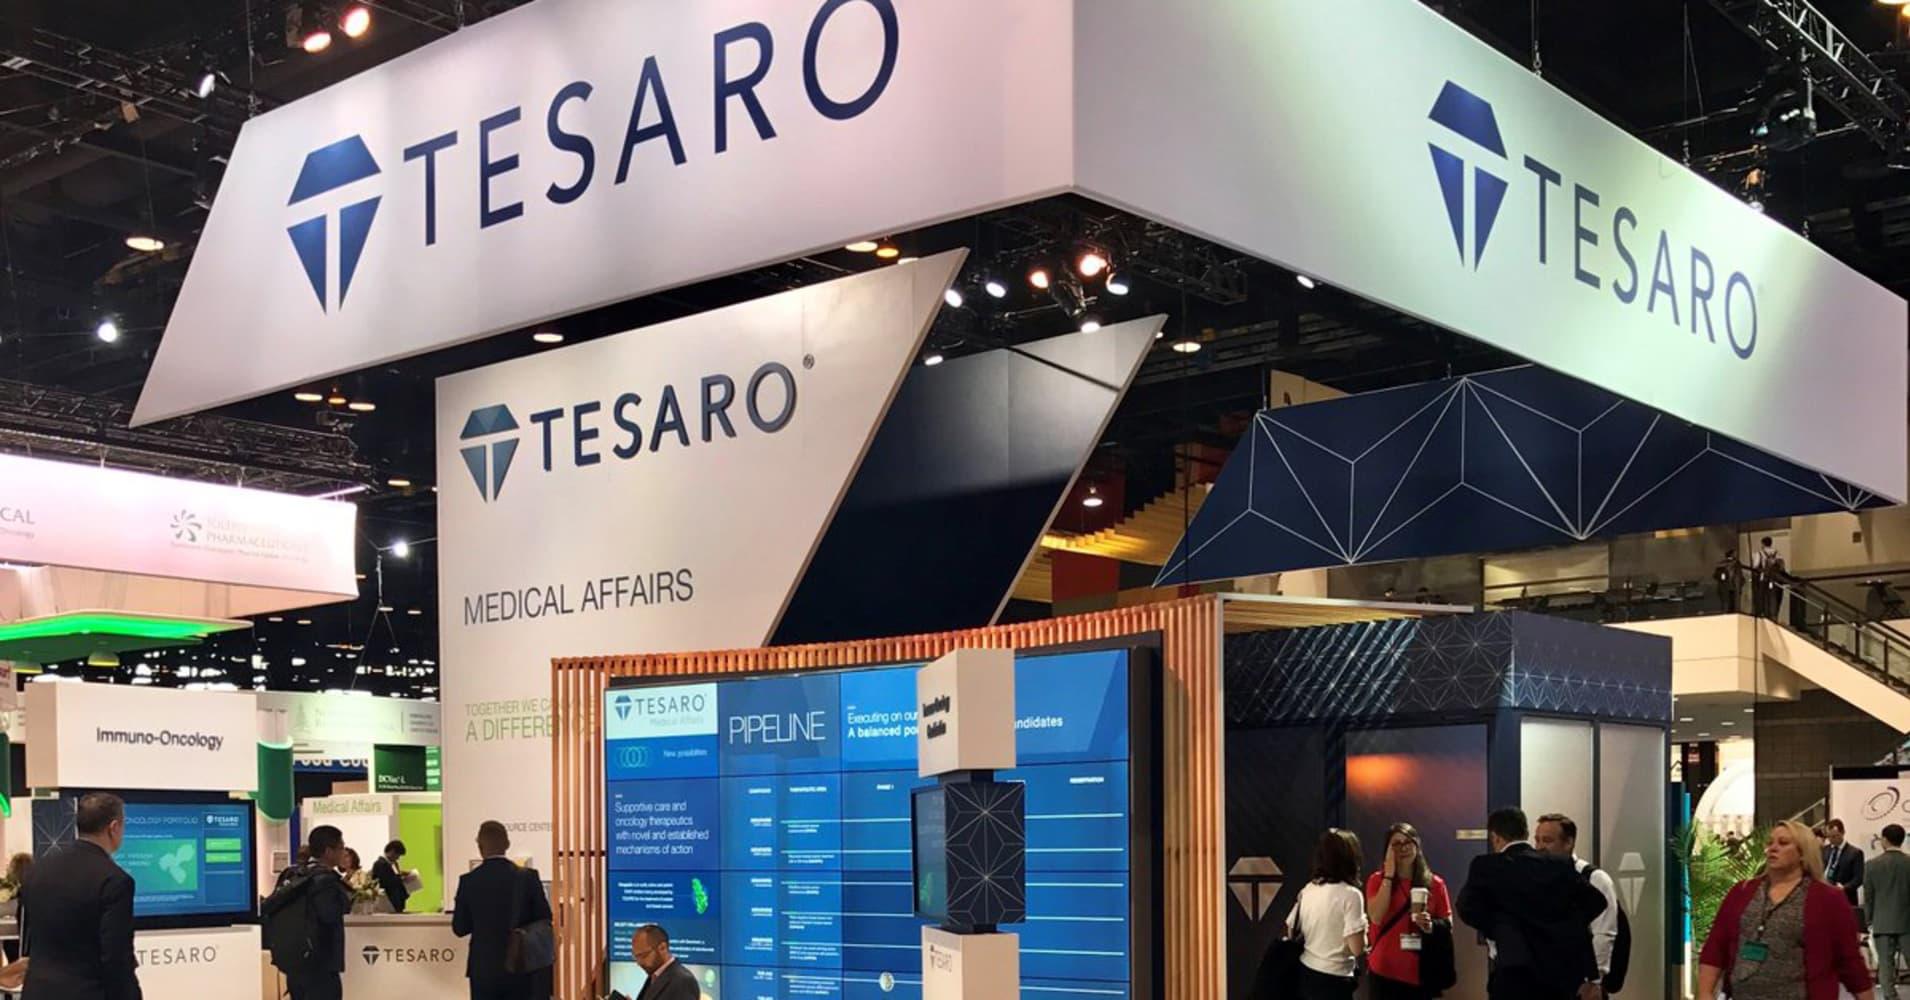 Cancer drug company Tesaro shares rise 39% following report that it will explore sale